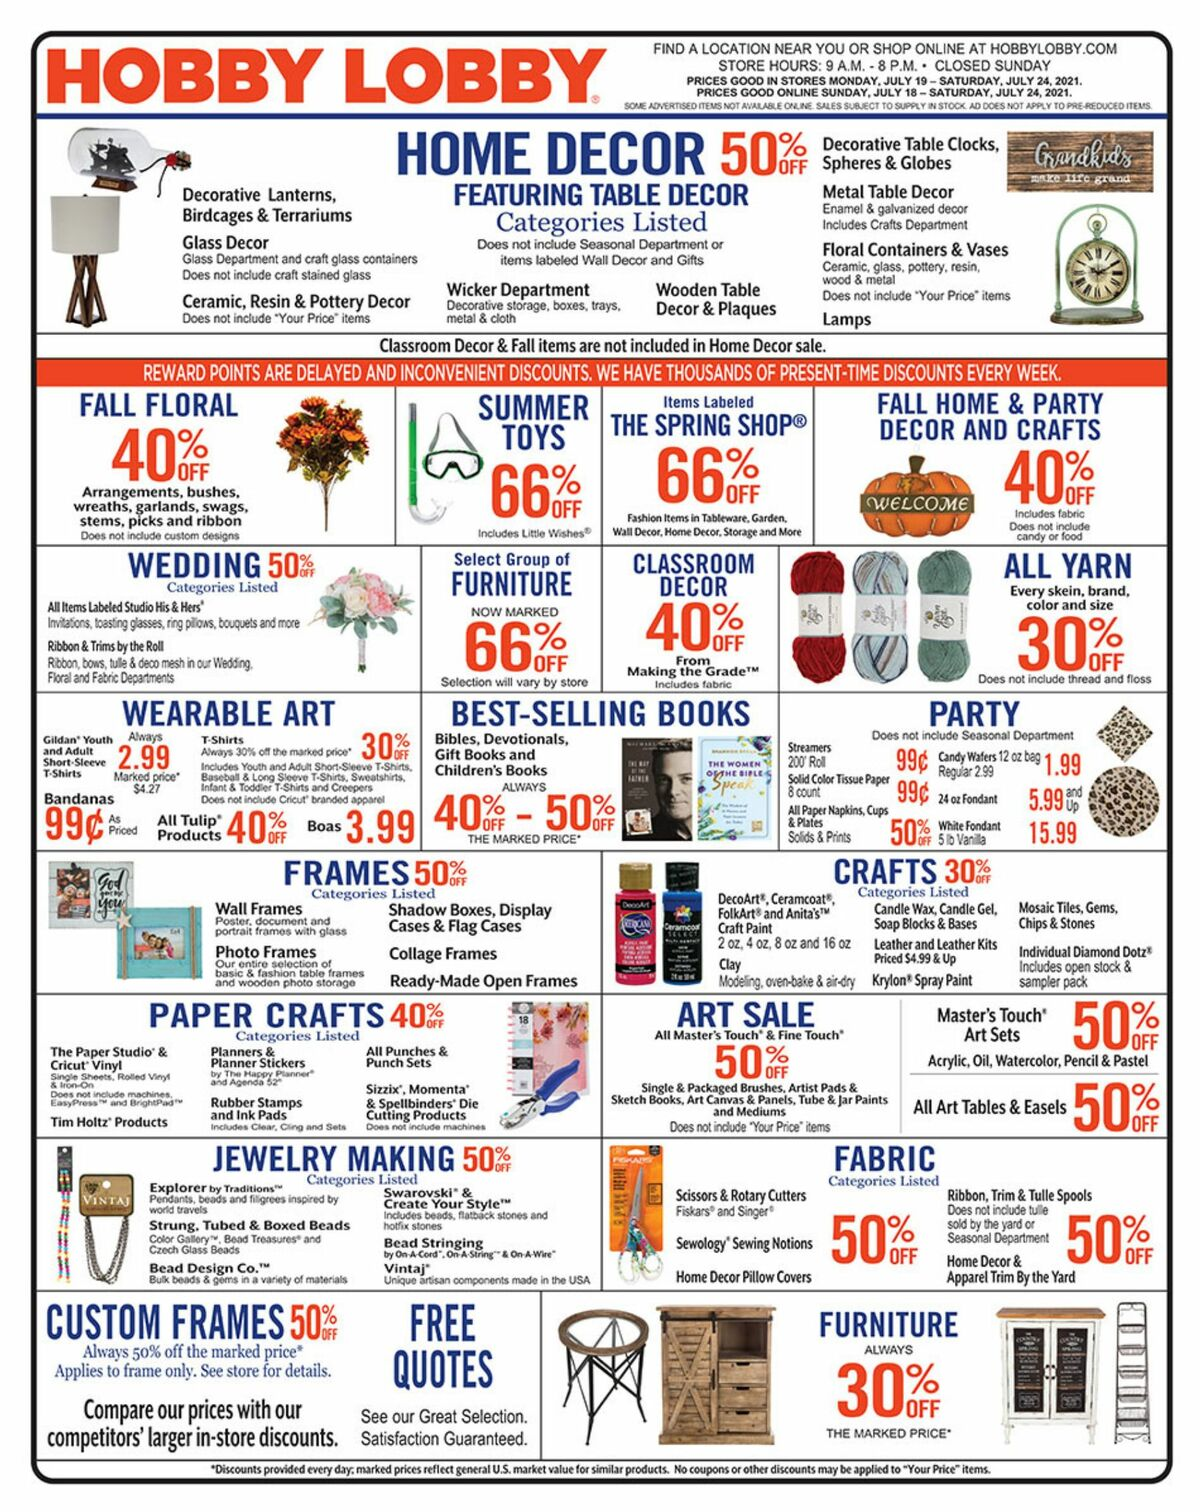 Hobby Lobby Weekly Ad from July 18